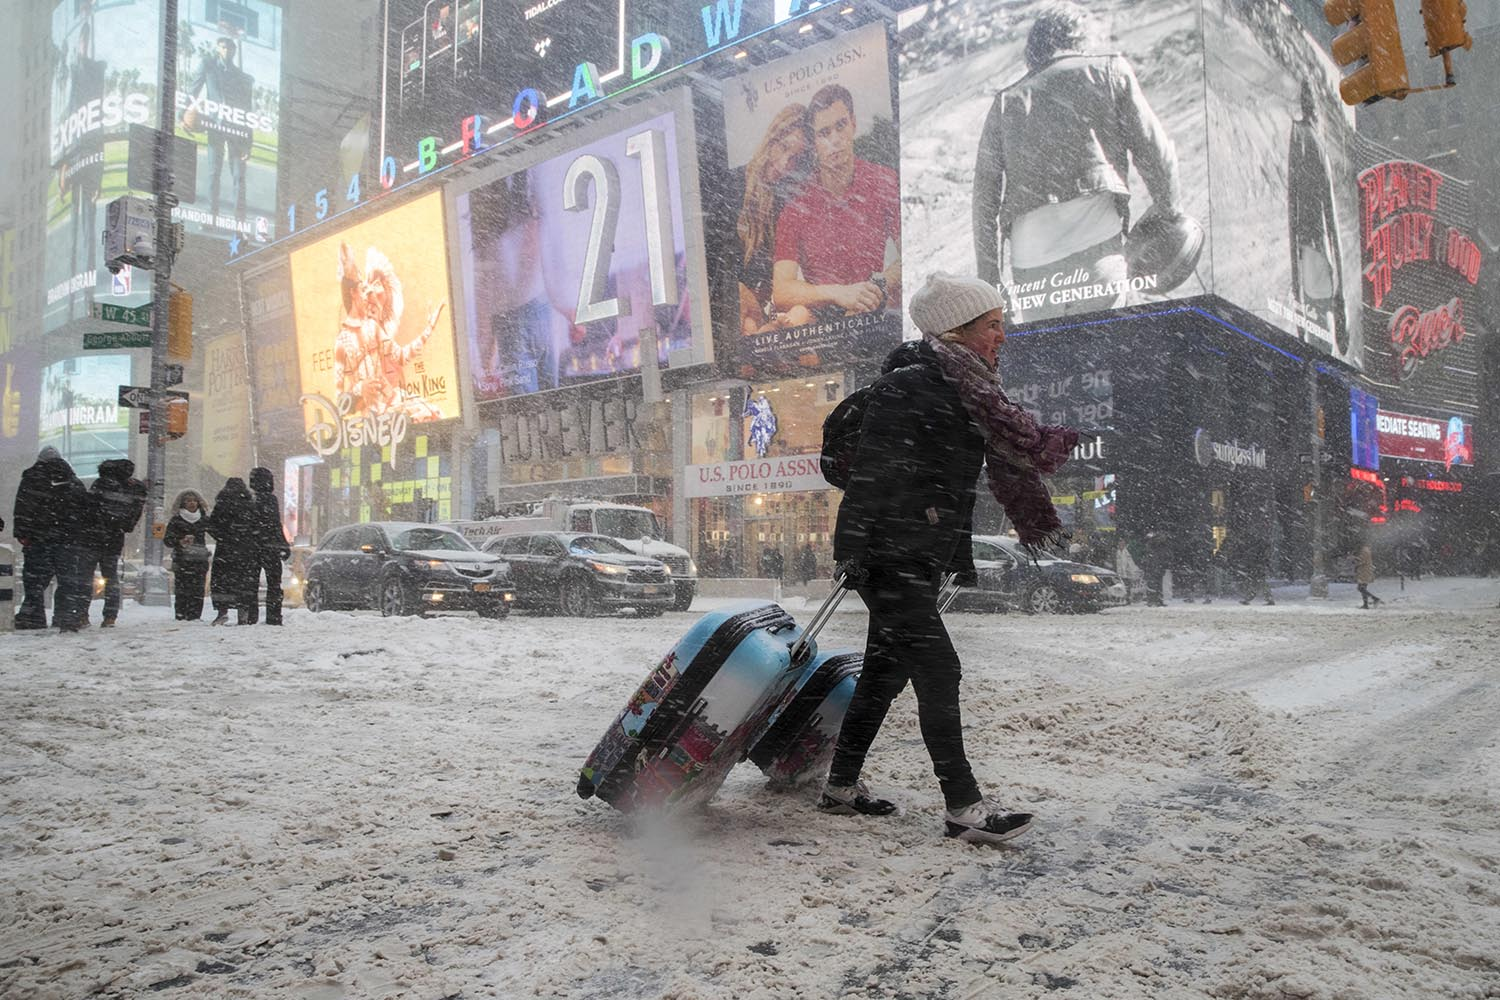 <div class='meta'><div class='origin-logo' data-origin='AP'></div><span class='caption-text' data-credit='AP Photo/Mary Altaffer'>Rebecca Hollis of New Zealand drags her suitcases in a snowstorm through Times Square on her way to a hotel, Thursday, Jan. 4, 2018, in New York.</span></div>